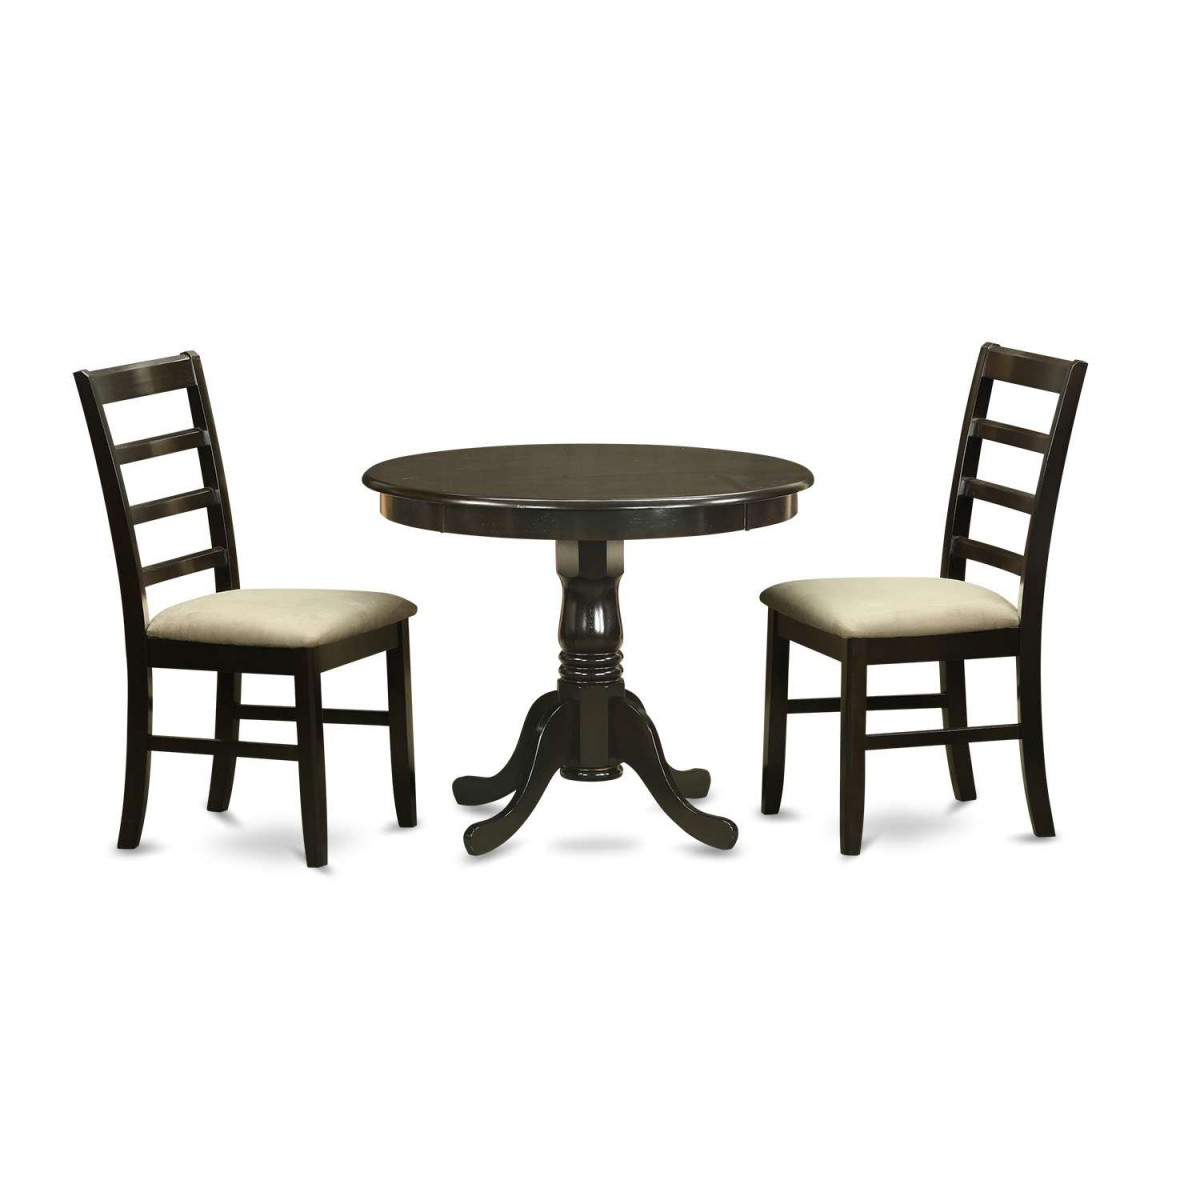 East West Furniture Antique 3 Piece Small Kitchen Table